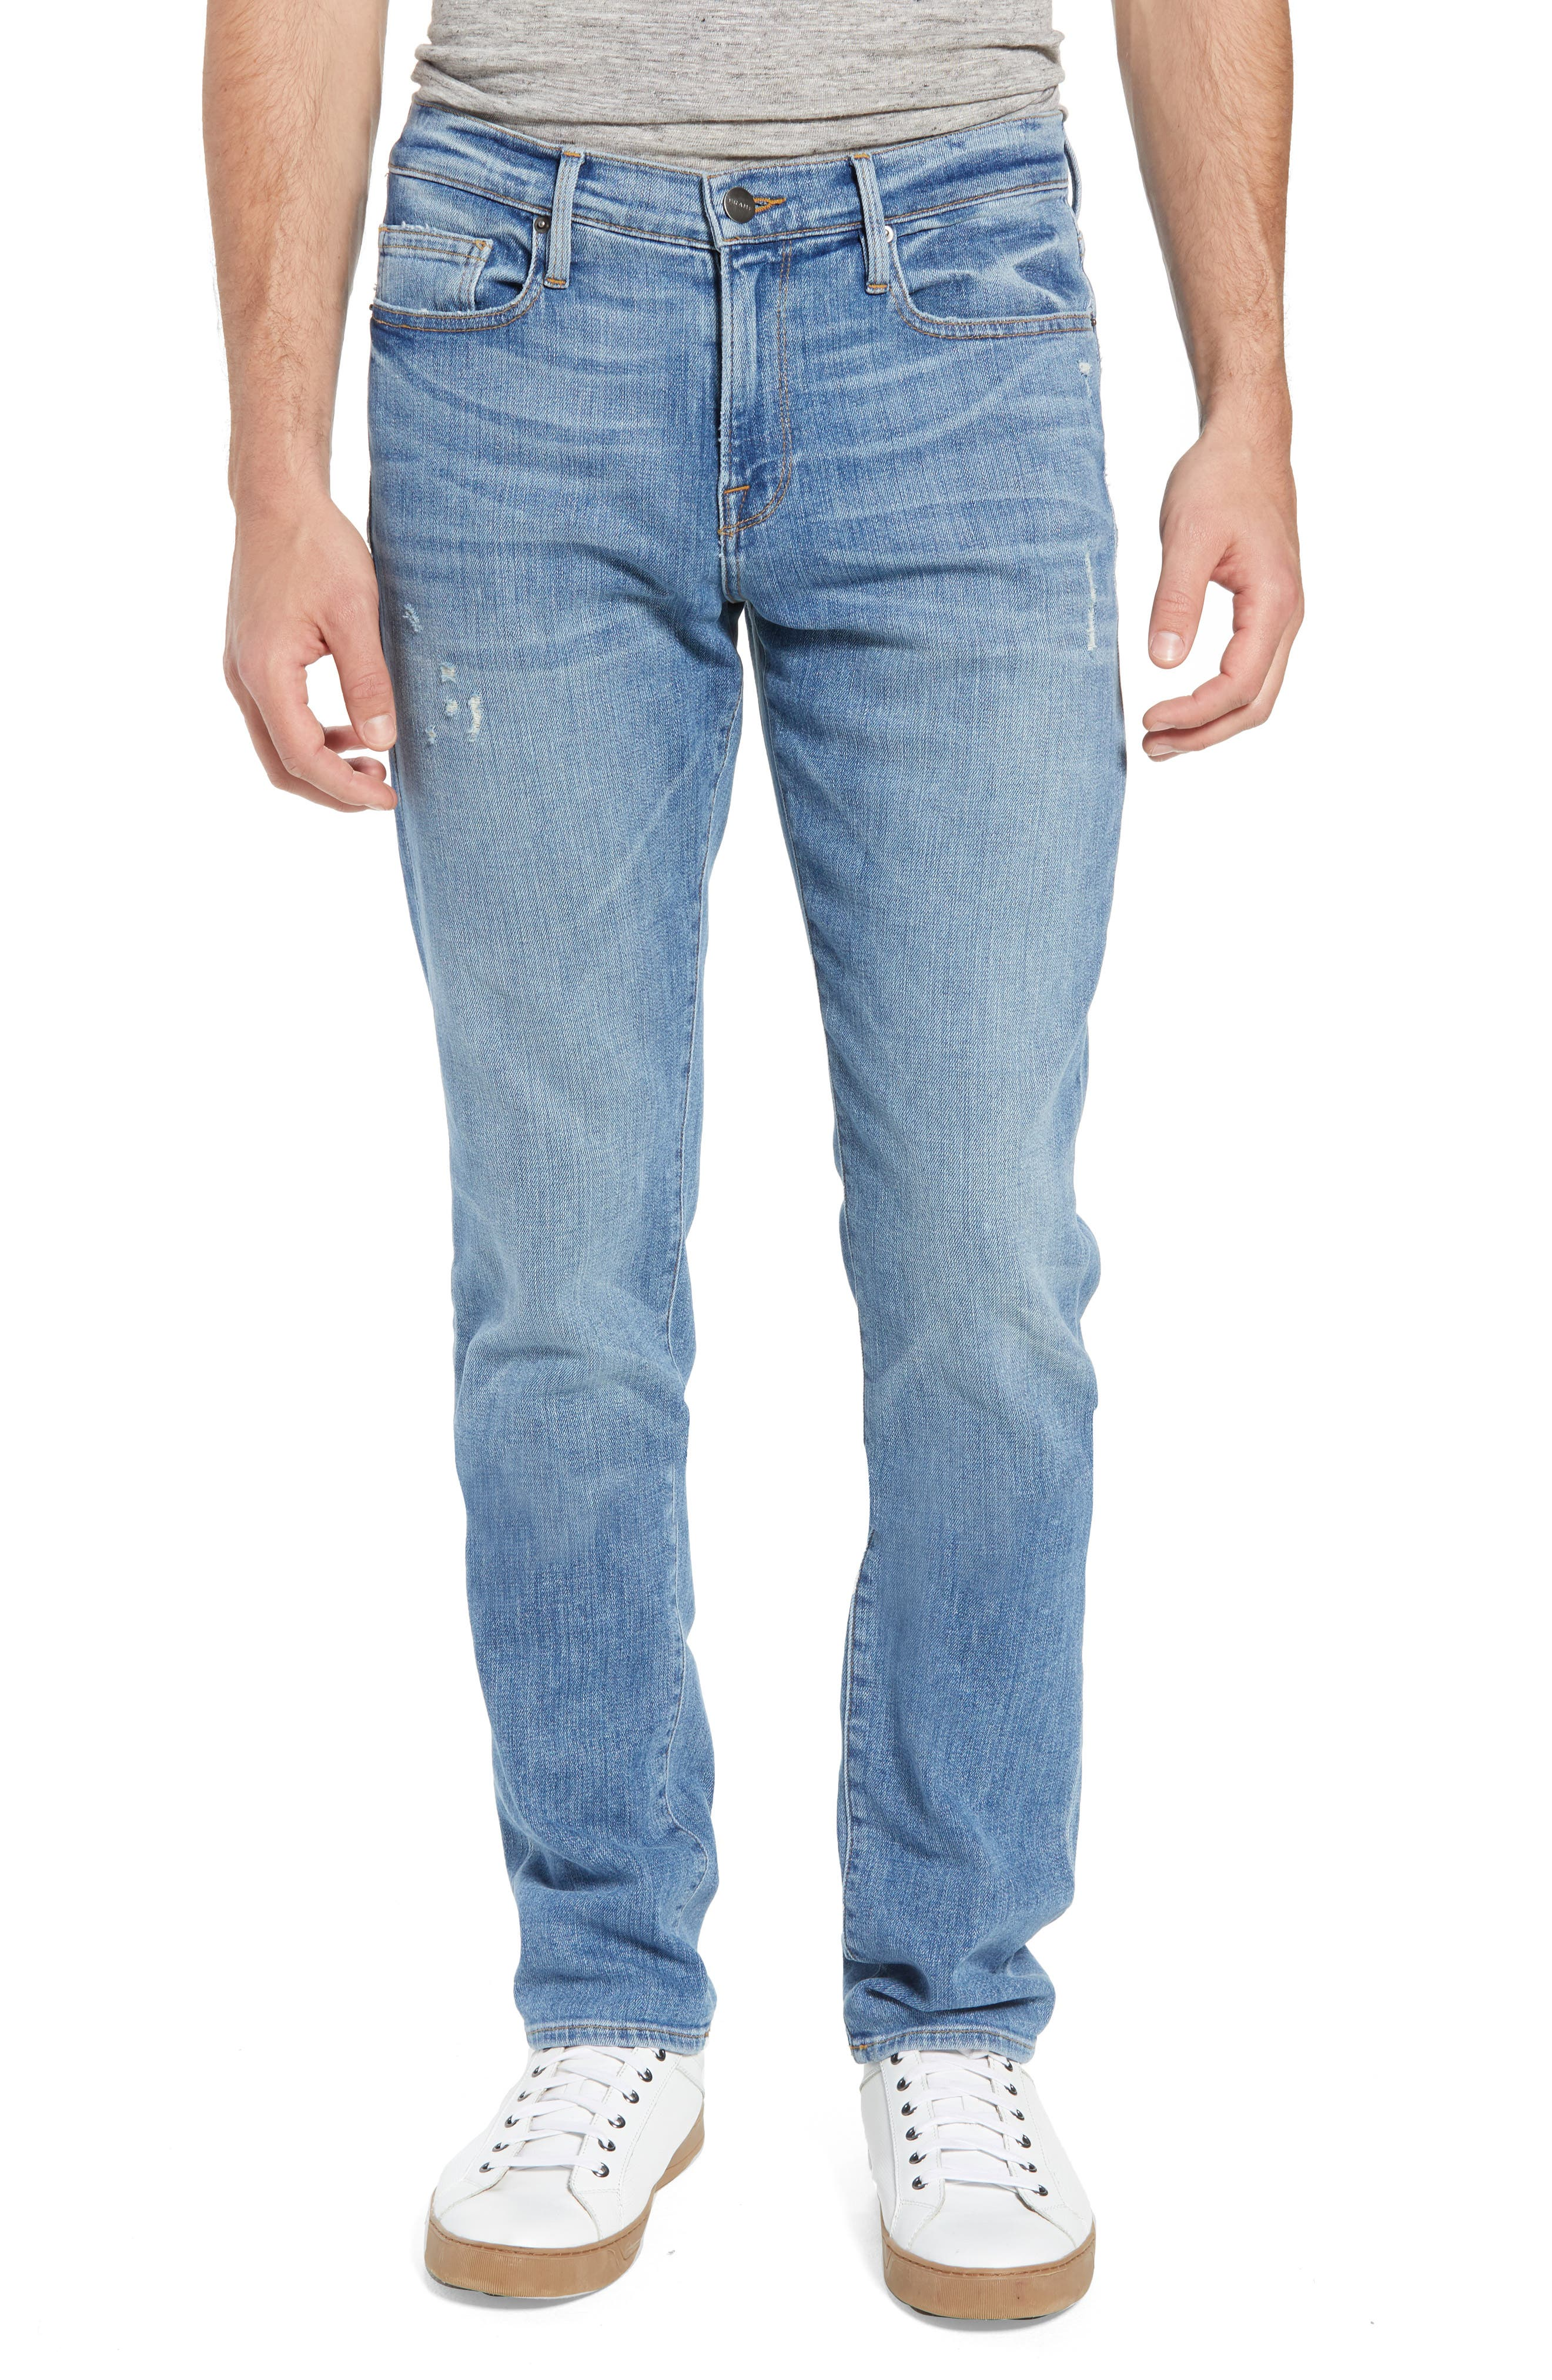 L'Homme Slim Straight Fit Jeans,                         Main,                         color, Russel Cave